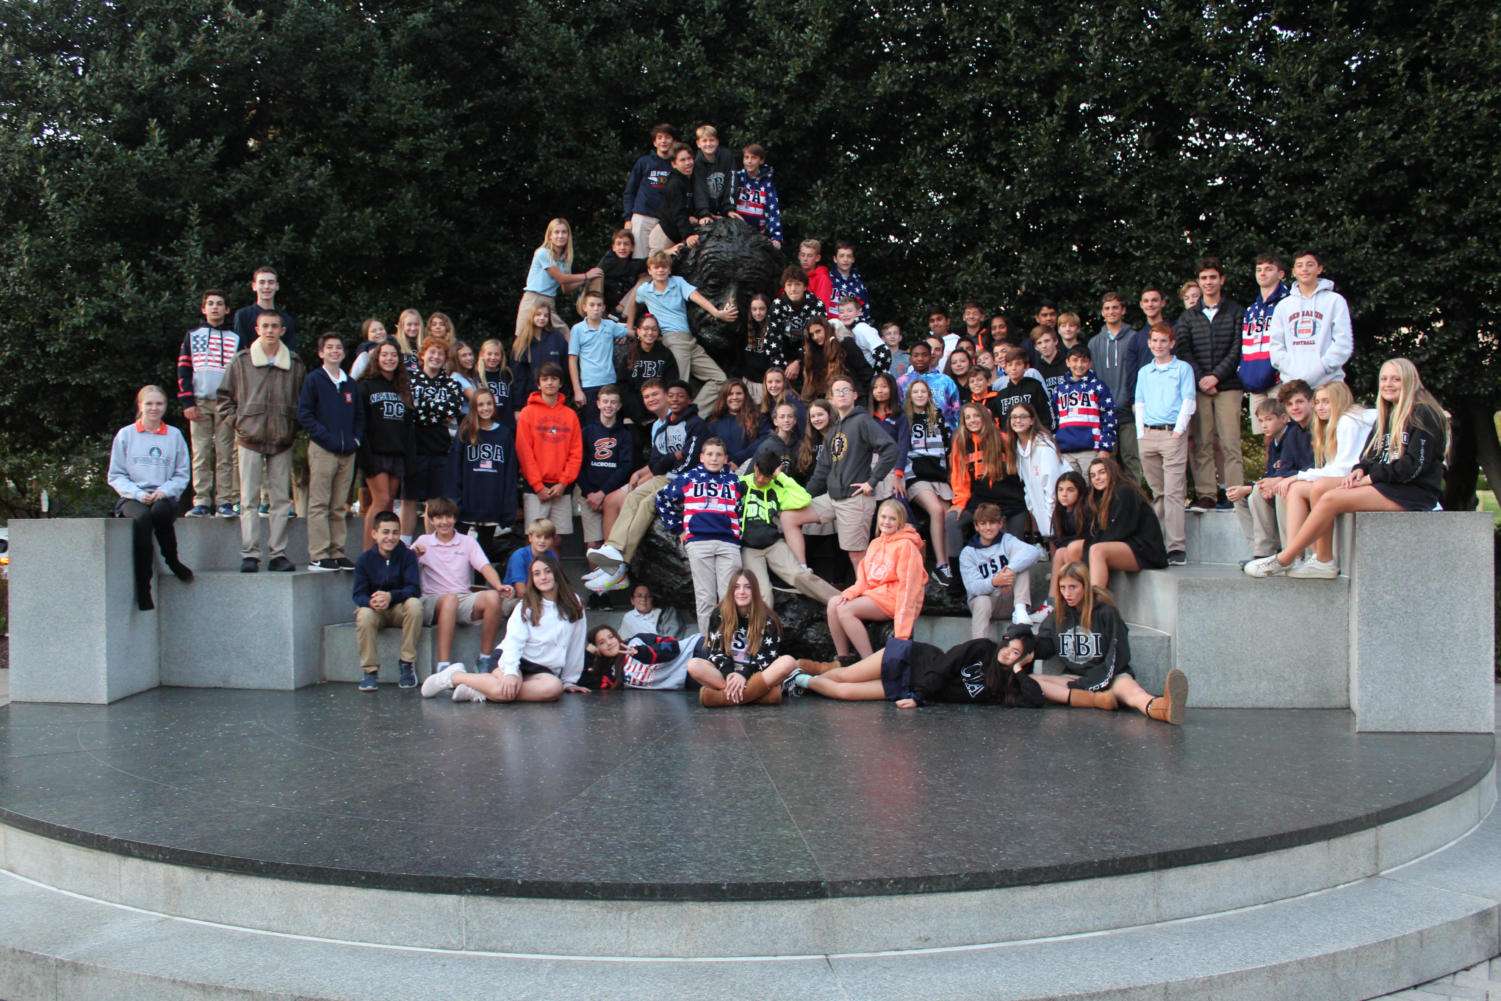 The eighth-grade poses in front of famous scientist Albert einstein.